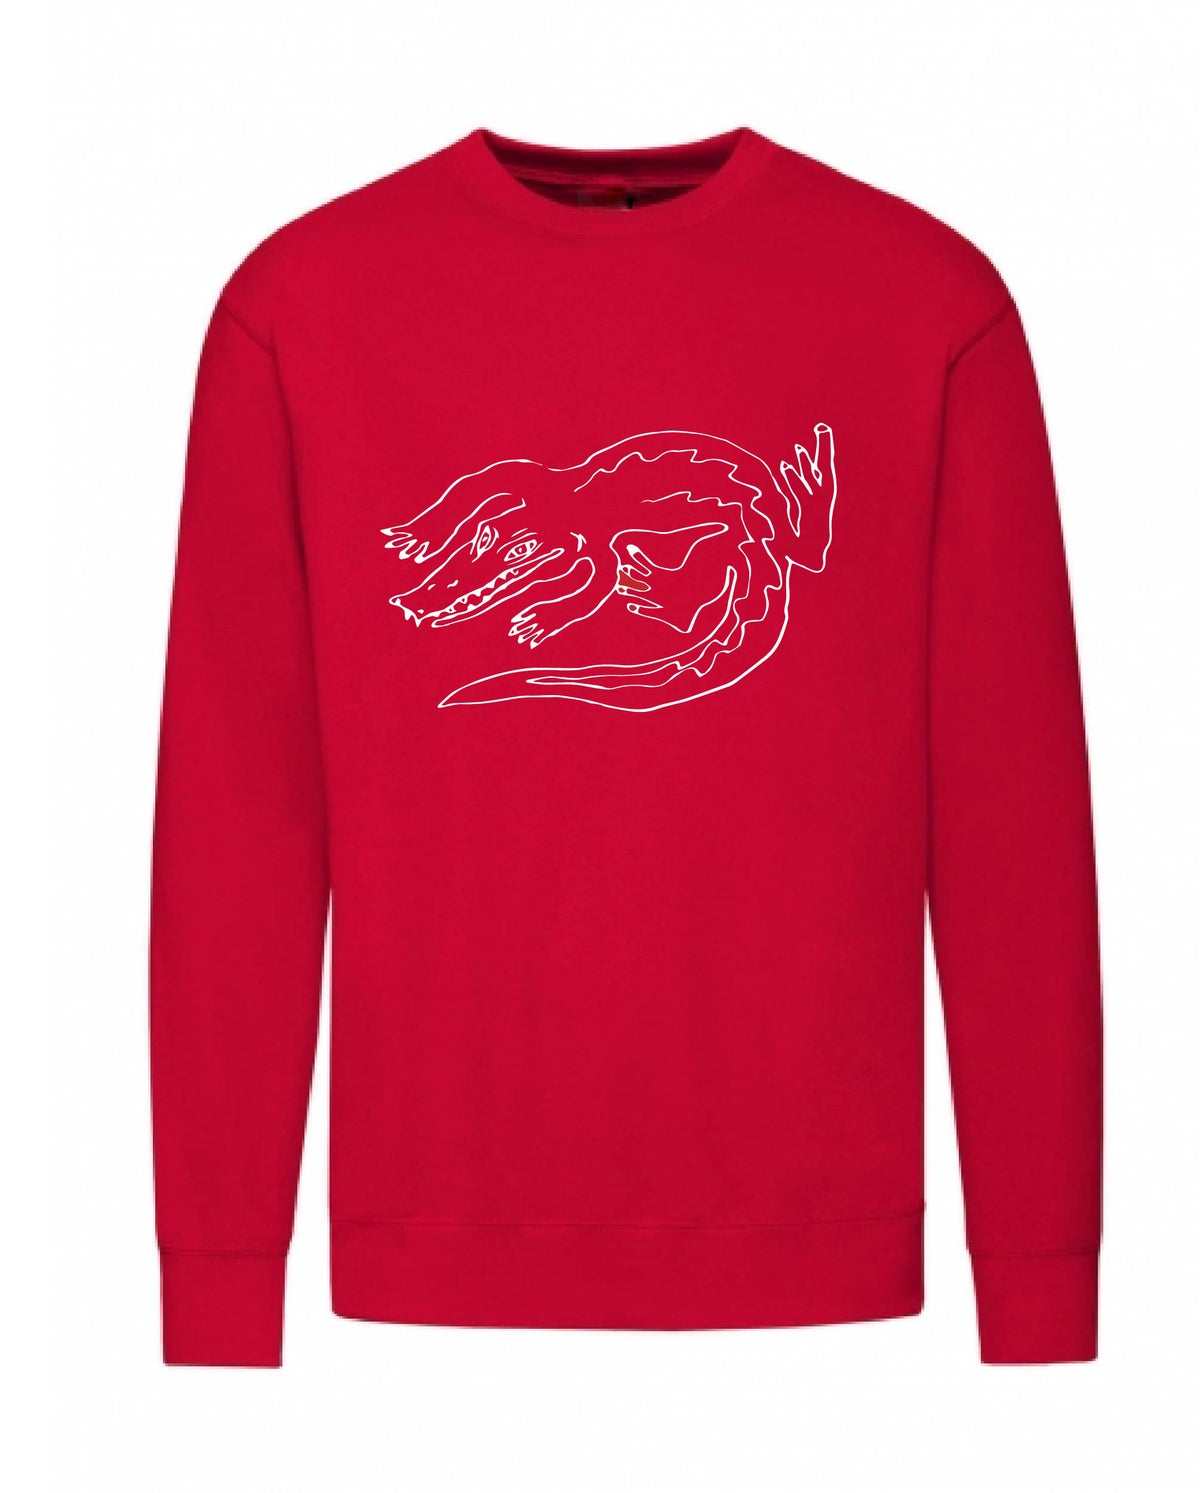 Image of The  red Crocodile